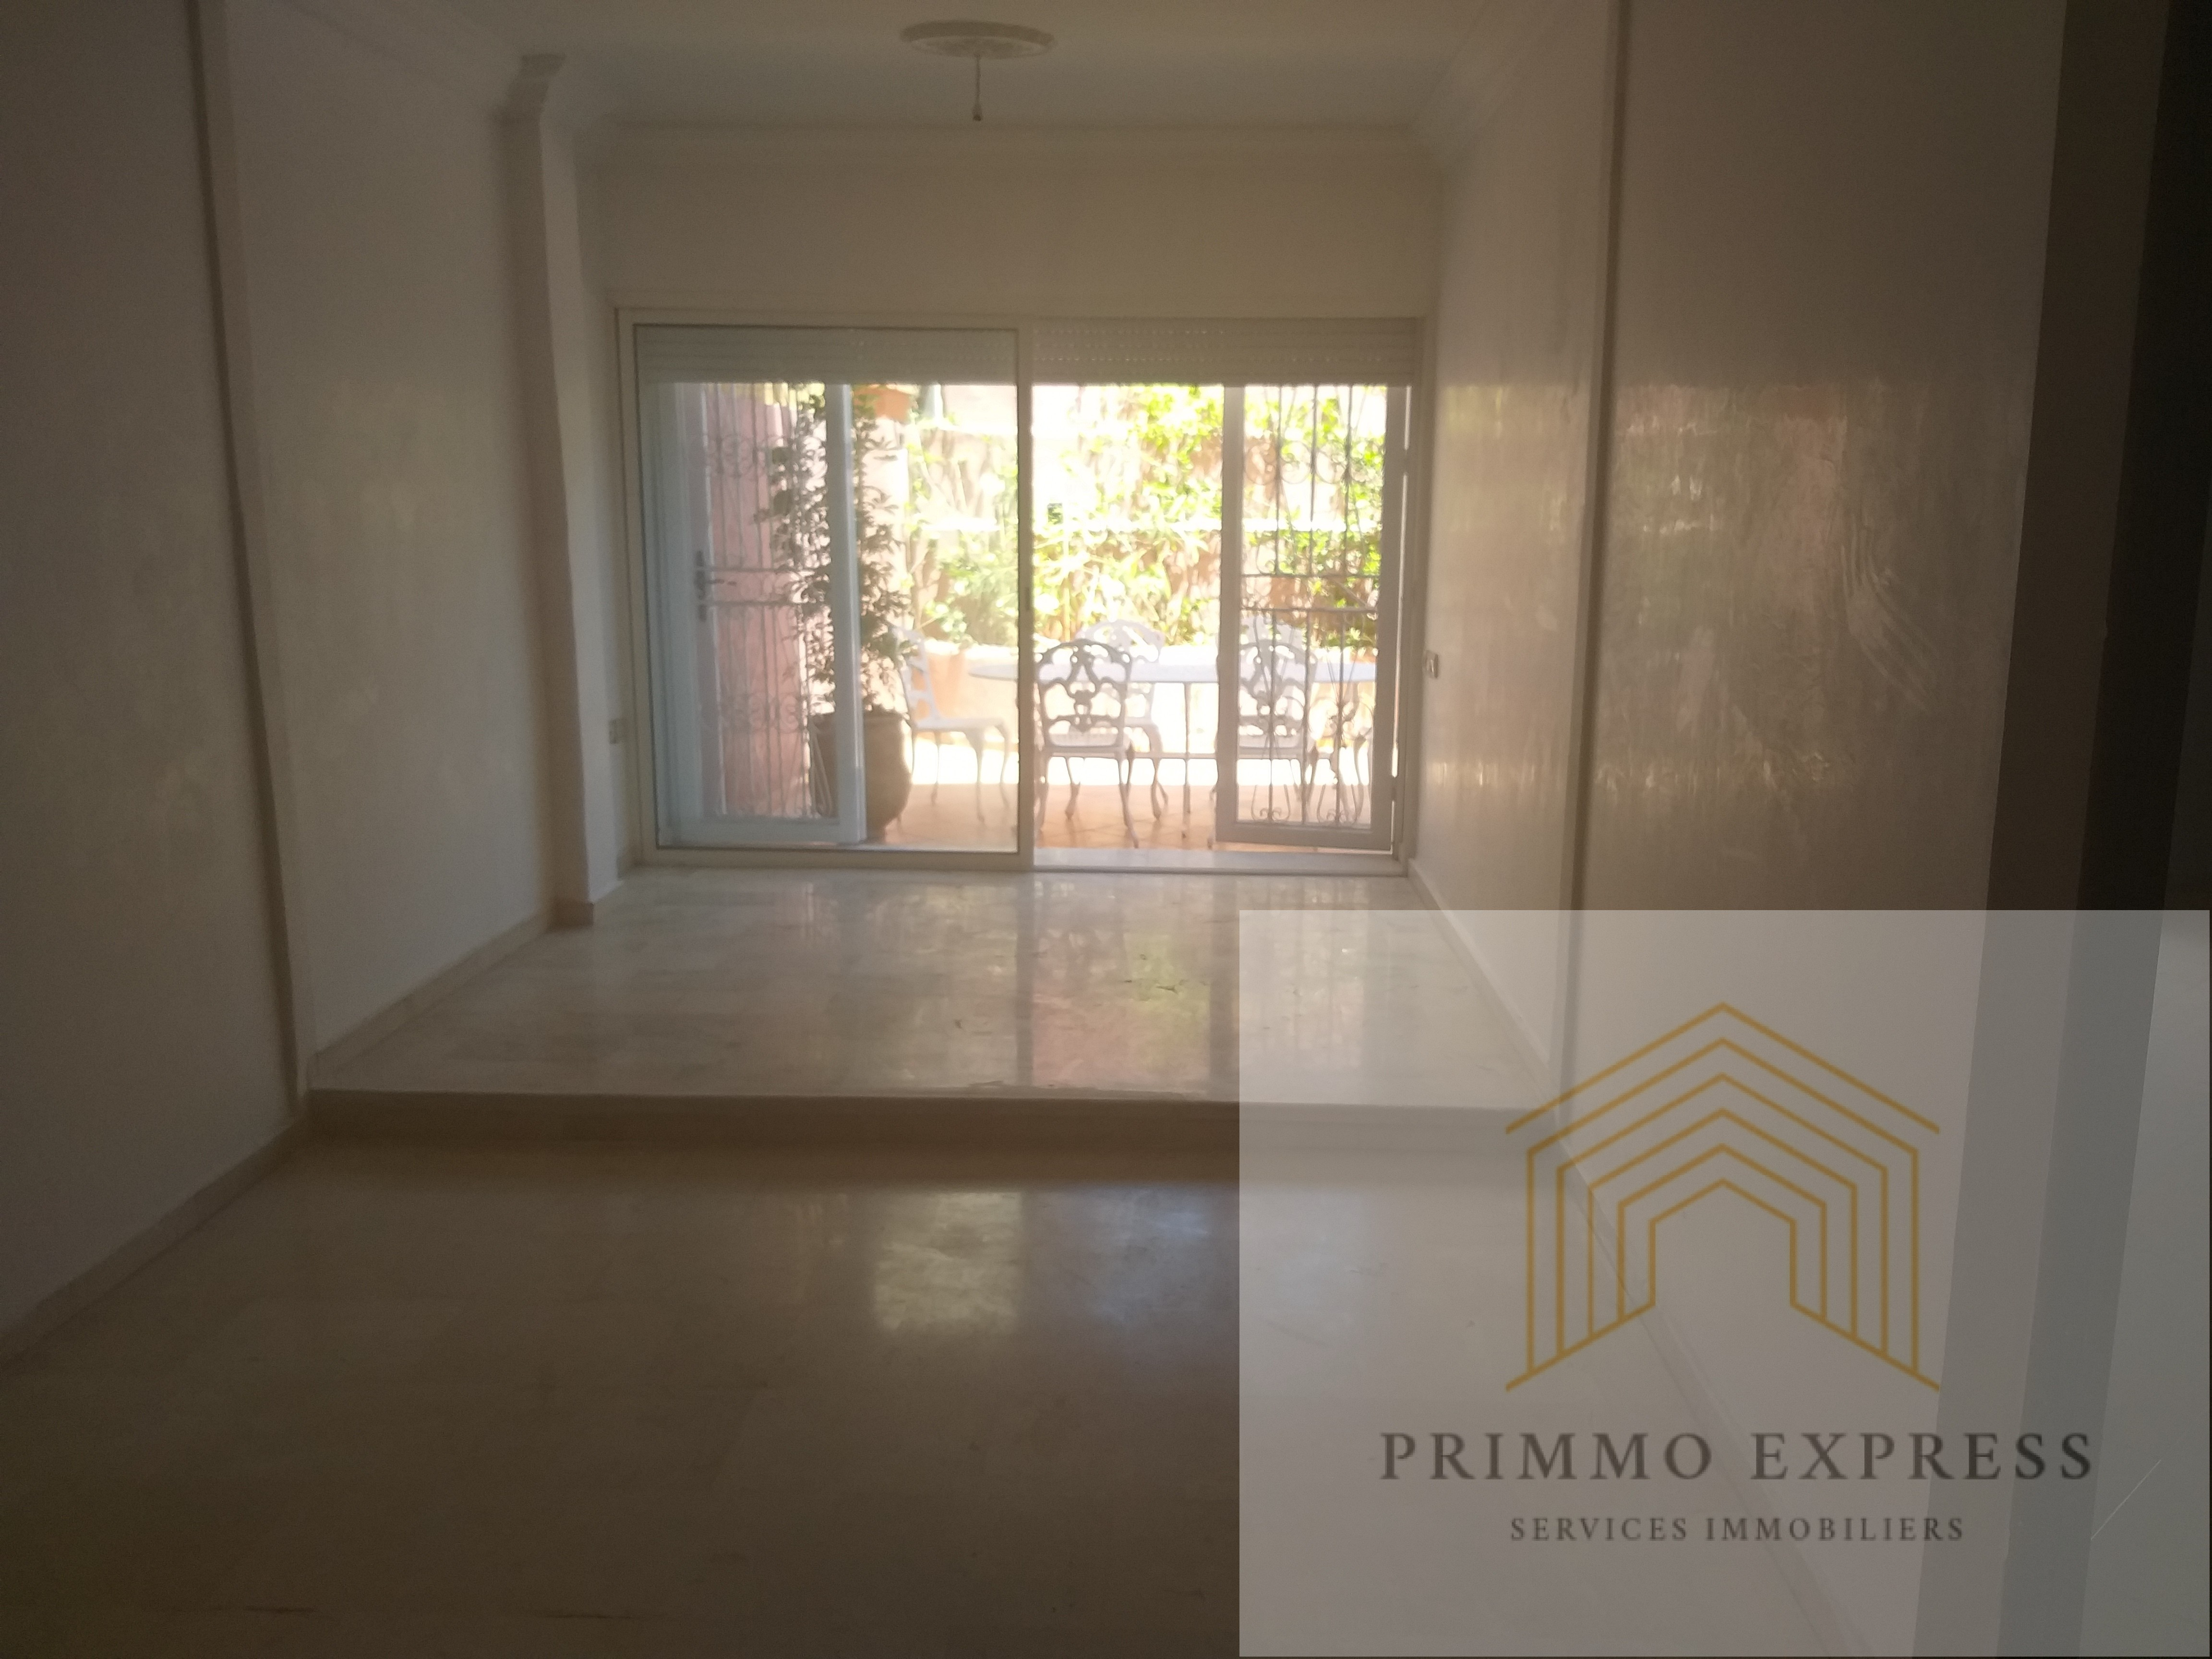 Vente <strong>Appartement</strong> Casablanca 2 Mars <strong>94 m2</strong>